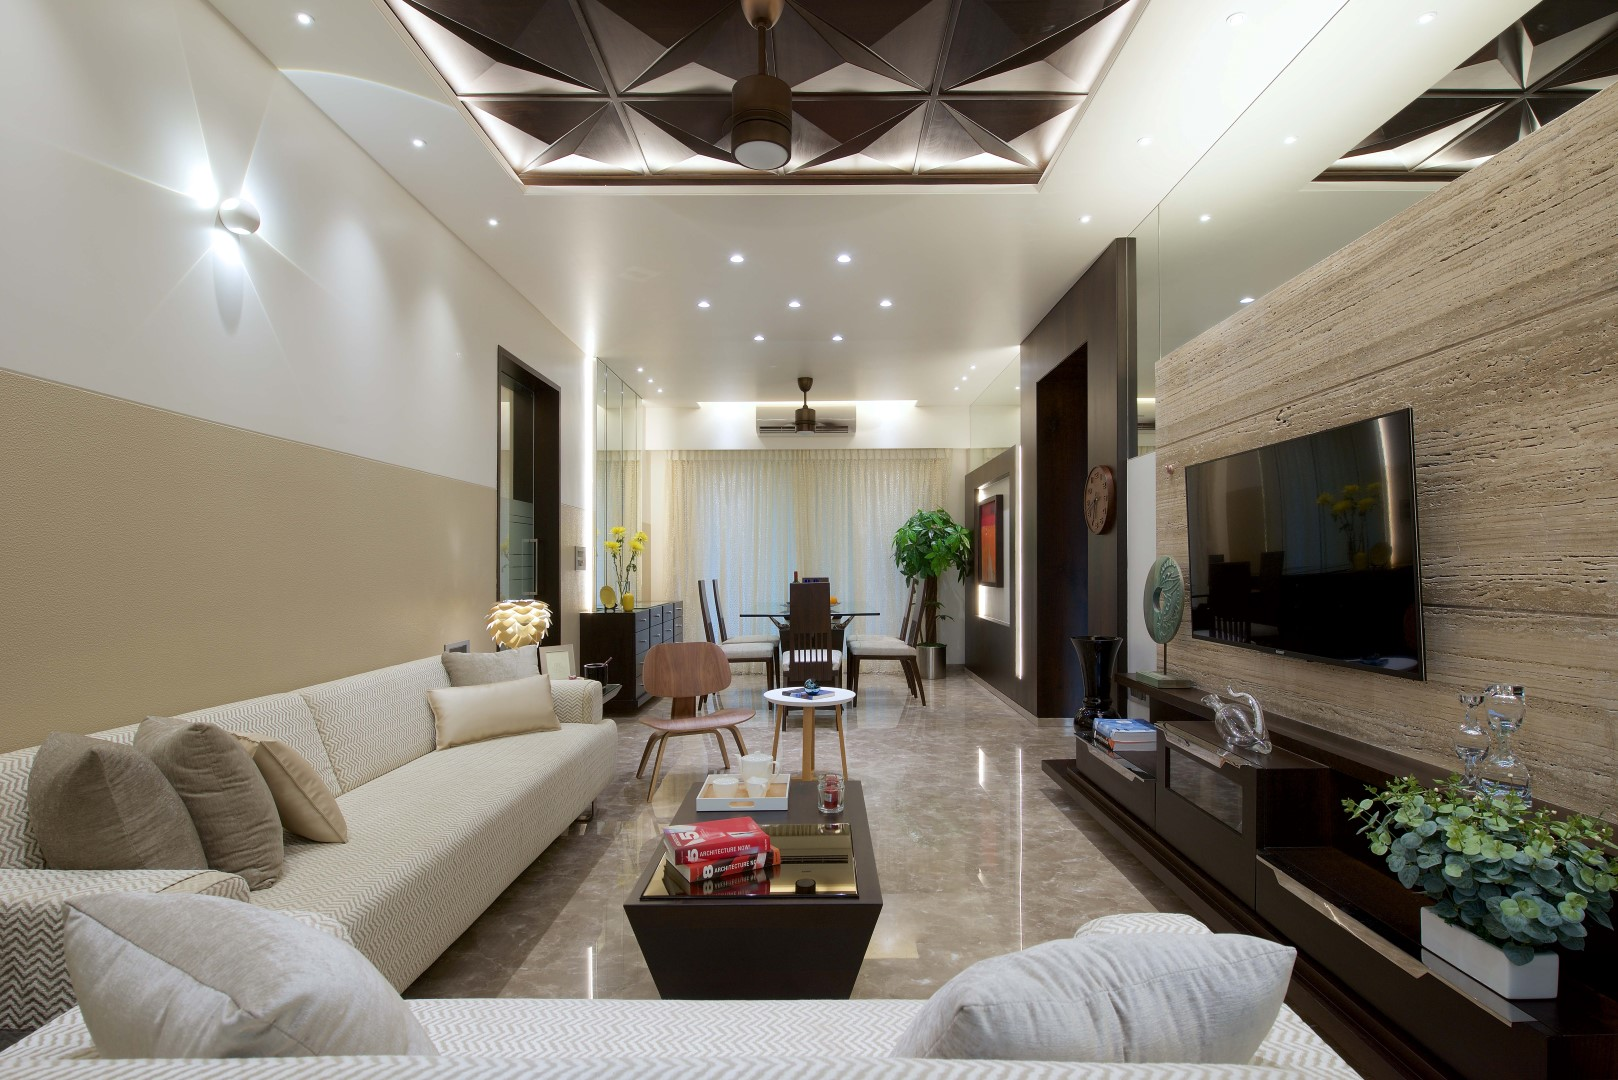 3 bhk apartment interiors at yari road interior design for Best interior designs for 3 bhk flats